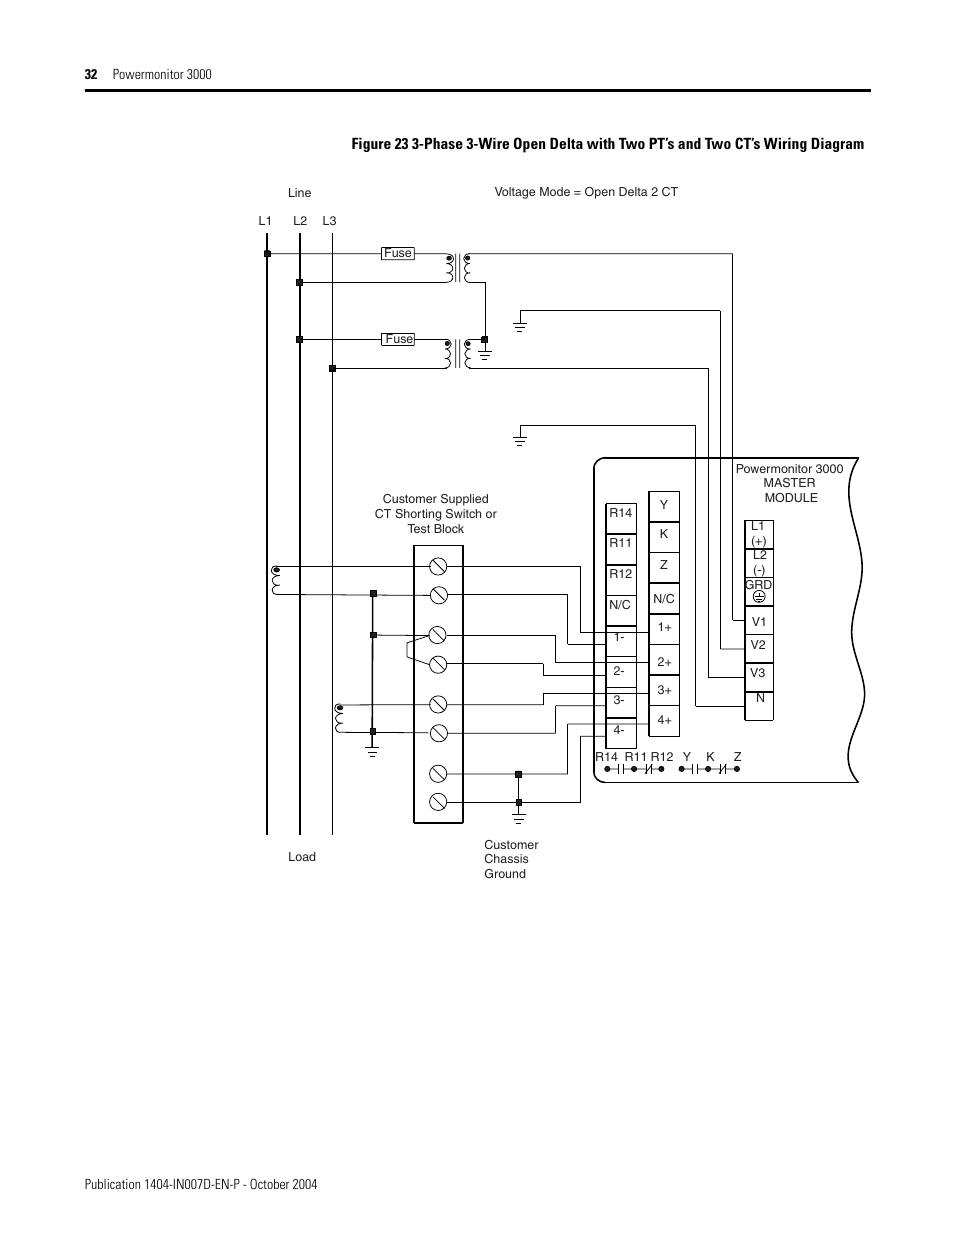 medium resolution of rockwell automation 1404 m4 m5 m6 m8 powermonitor 3000 installation instructions prior to firmware rev 3 0 user manual page 32 66